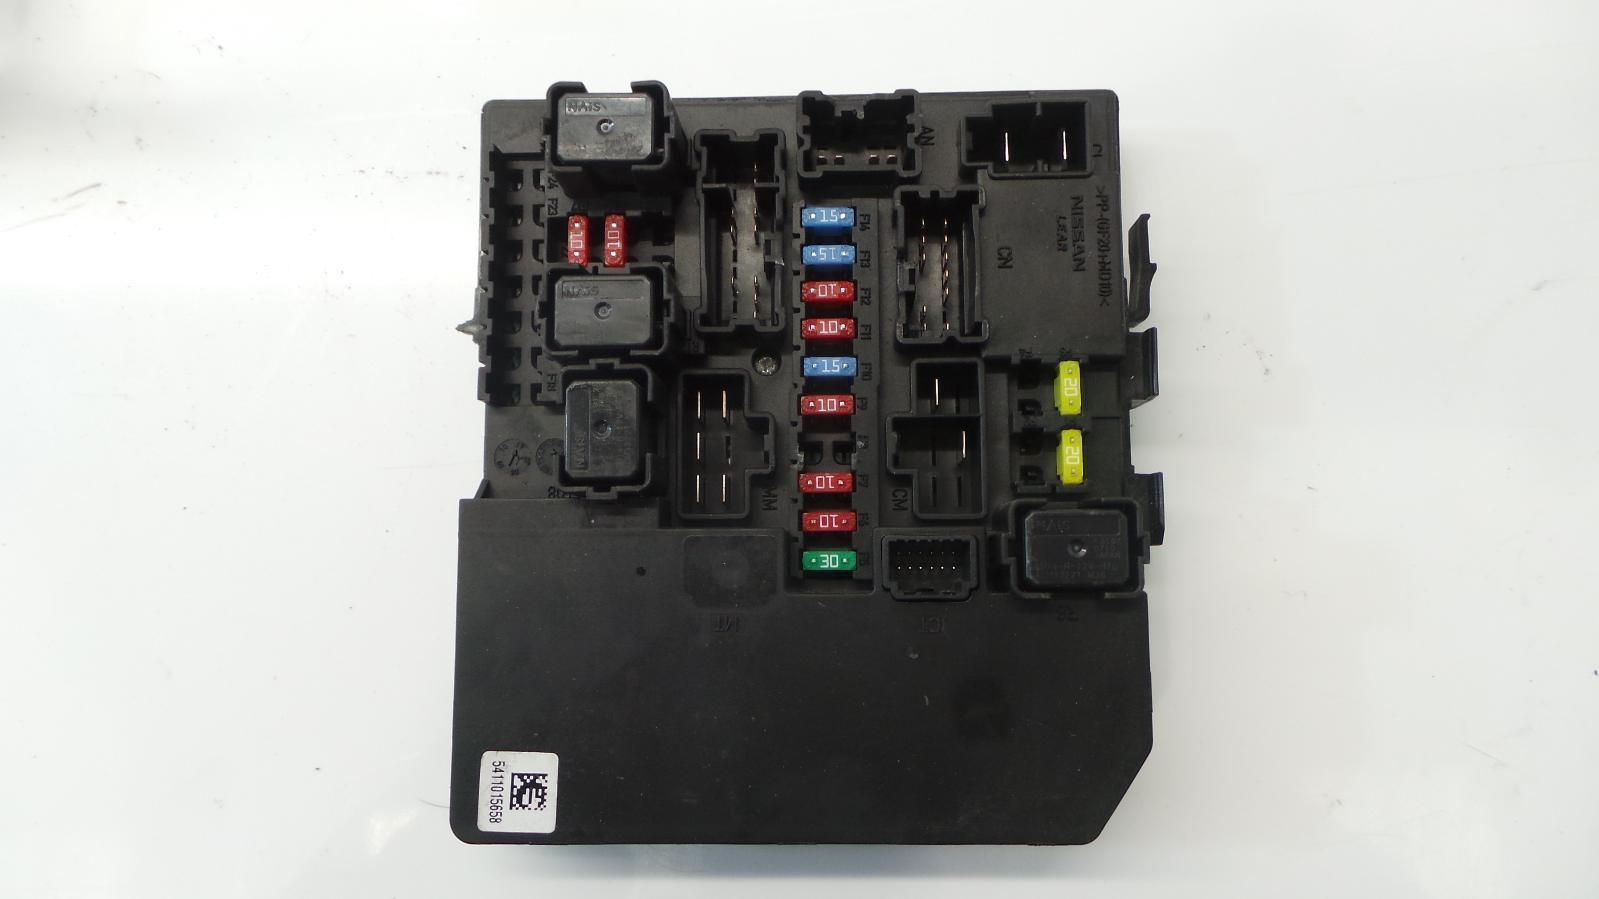 Nissan Nv200 1 5 Diesel 2012 Fuse Box 284b7jx50a 284b7 Jx50a Rh Renault  Spares Co Uk On Nissan Altima 2005 Fuse List For Nissan Nv200 Fuse Box #7  At 2003 ...